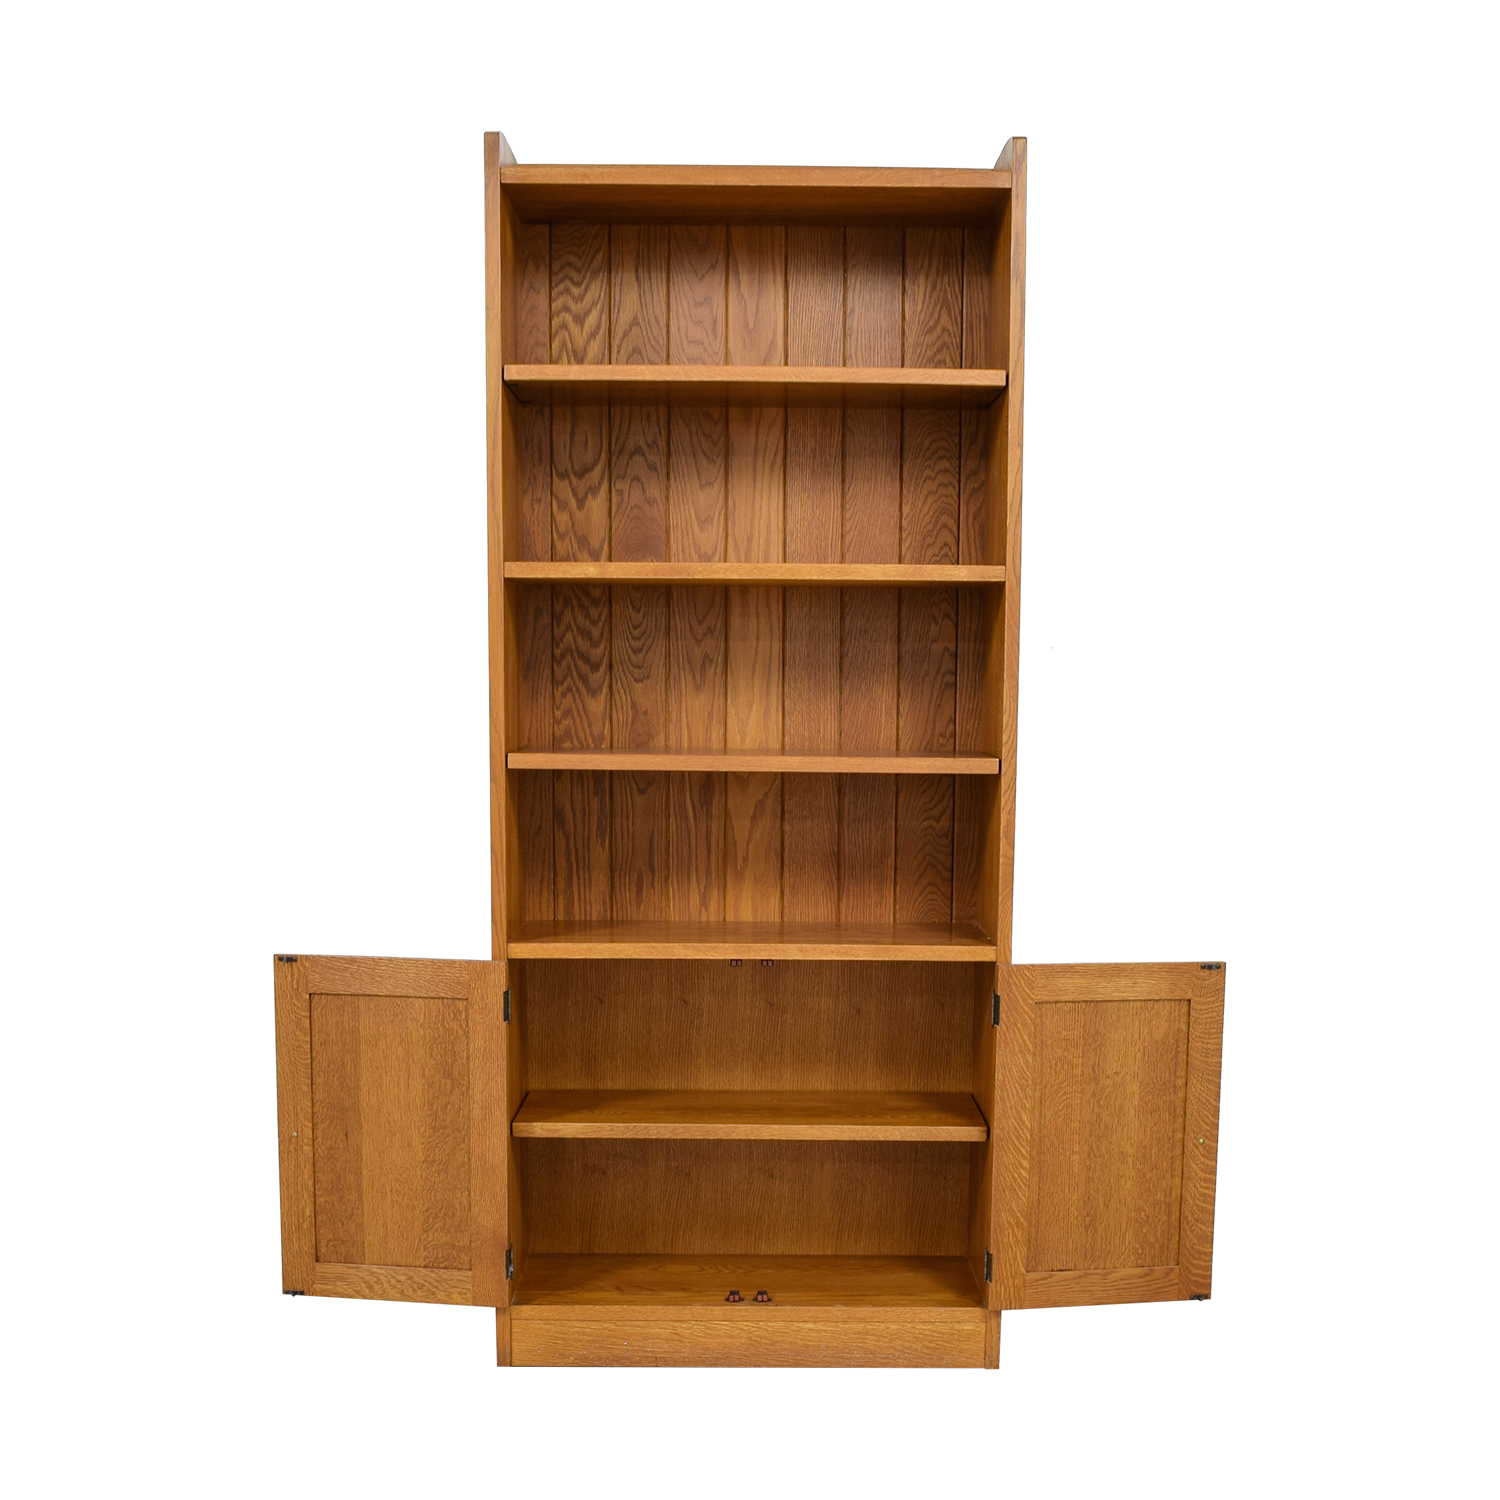 Stickley Stickley Wood Bookcase with Storage discount